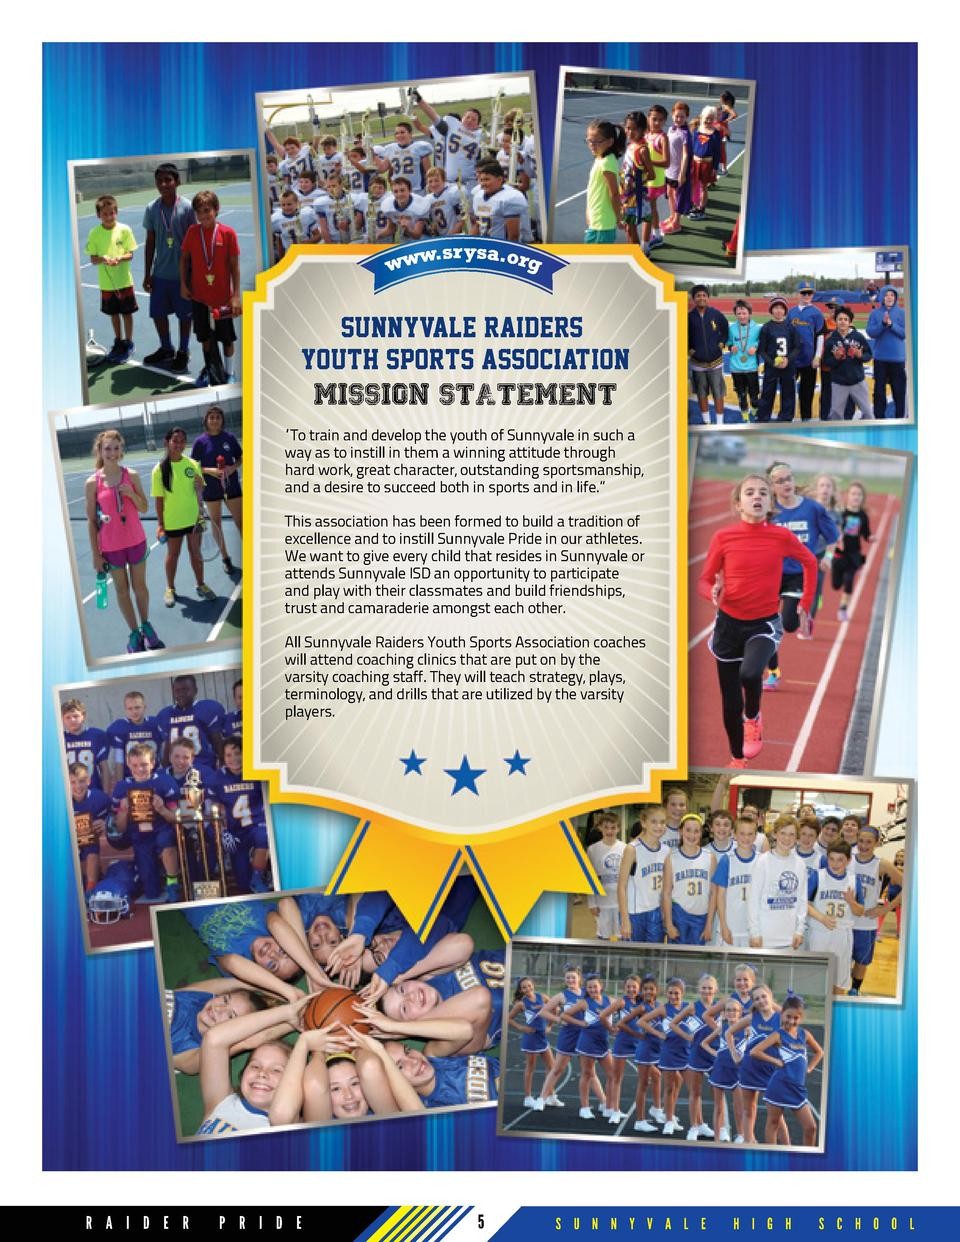 Sunnyvale Raiders Youth Sports Association MISSION STATEMENT    To train and develop the youth of Sunnyvale in such a way ...